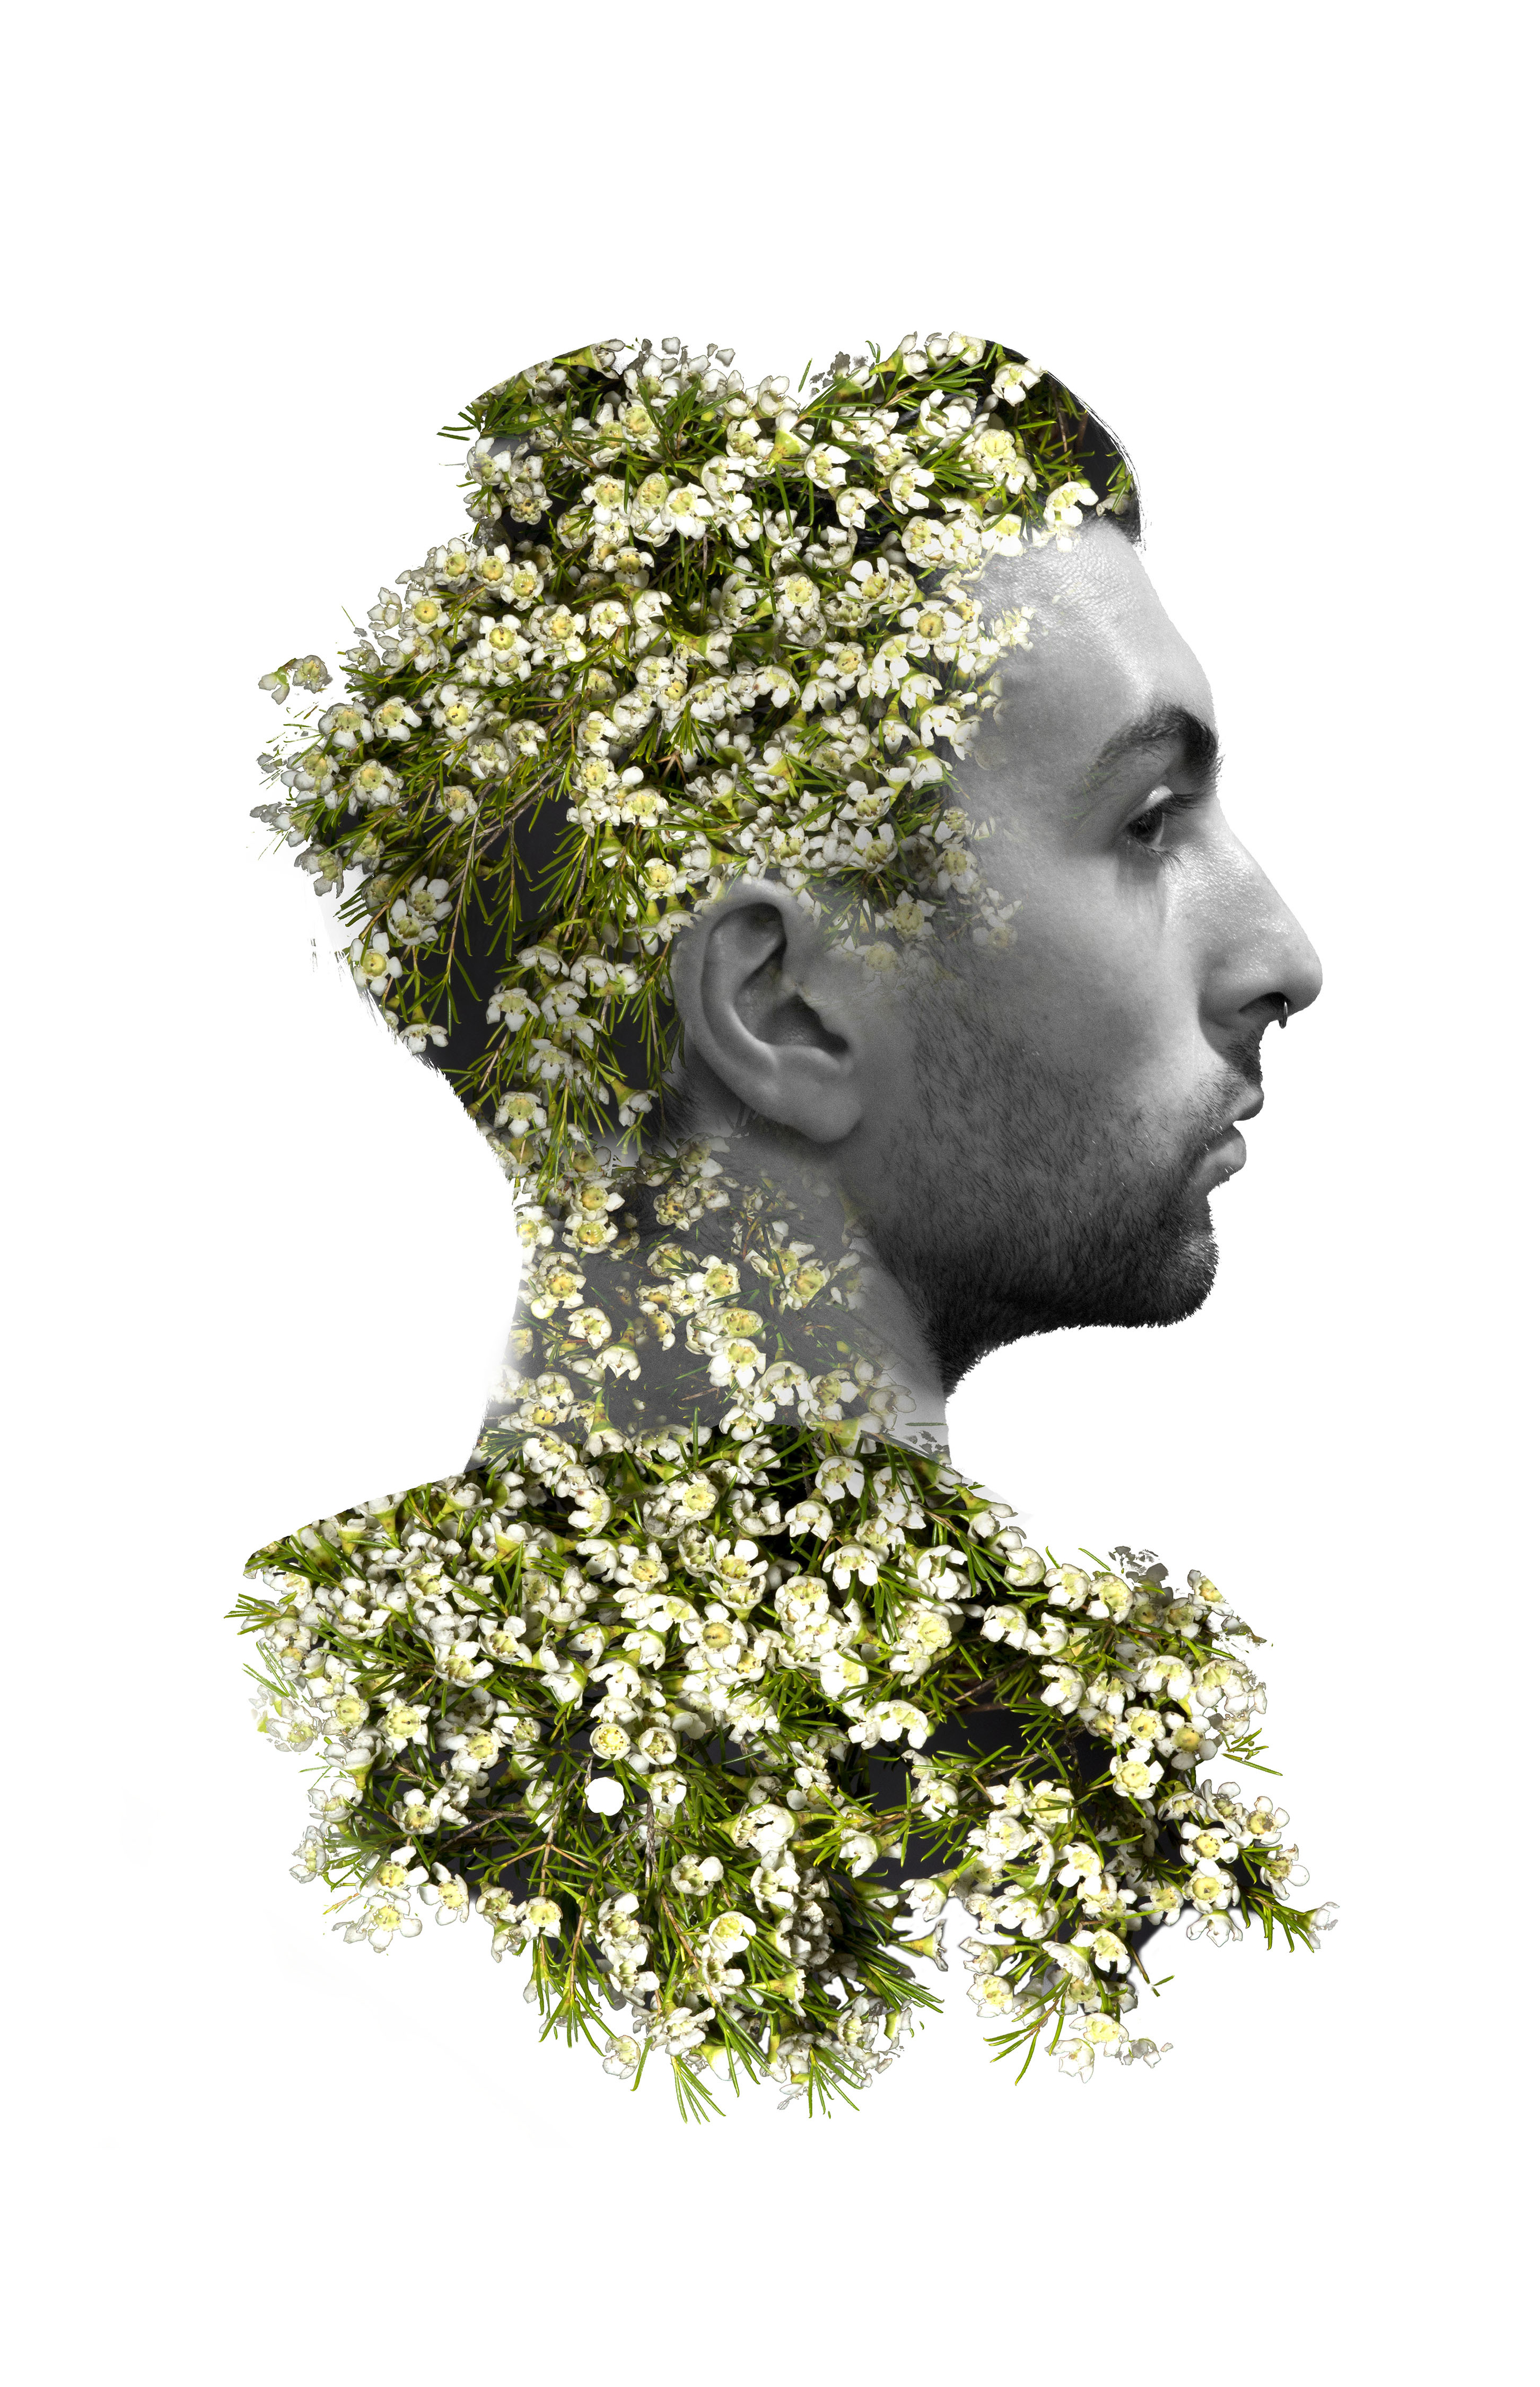 jason double exposure flowers